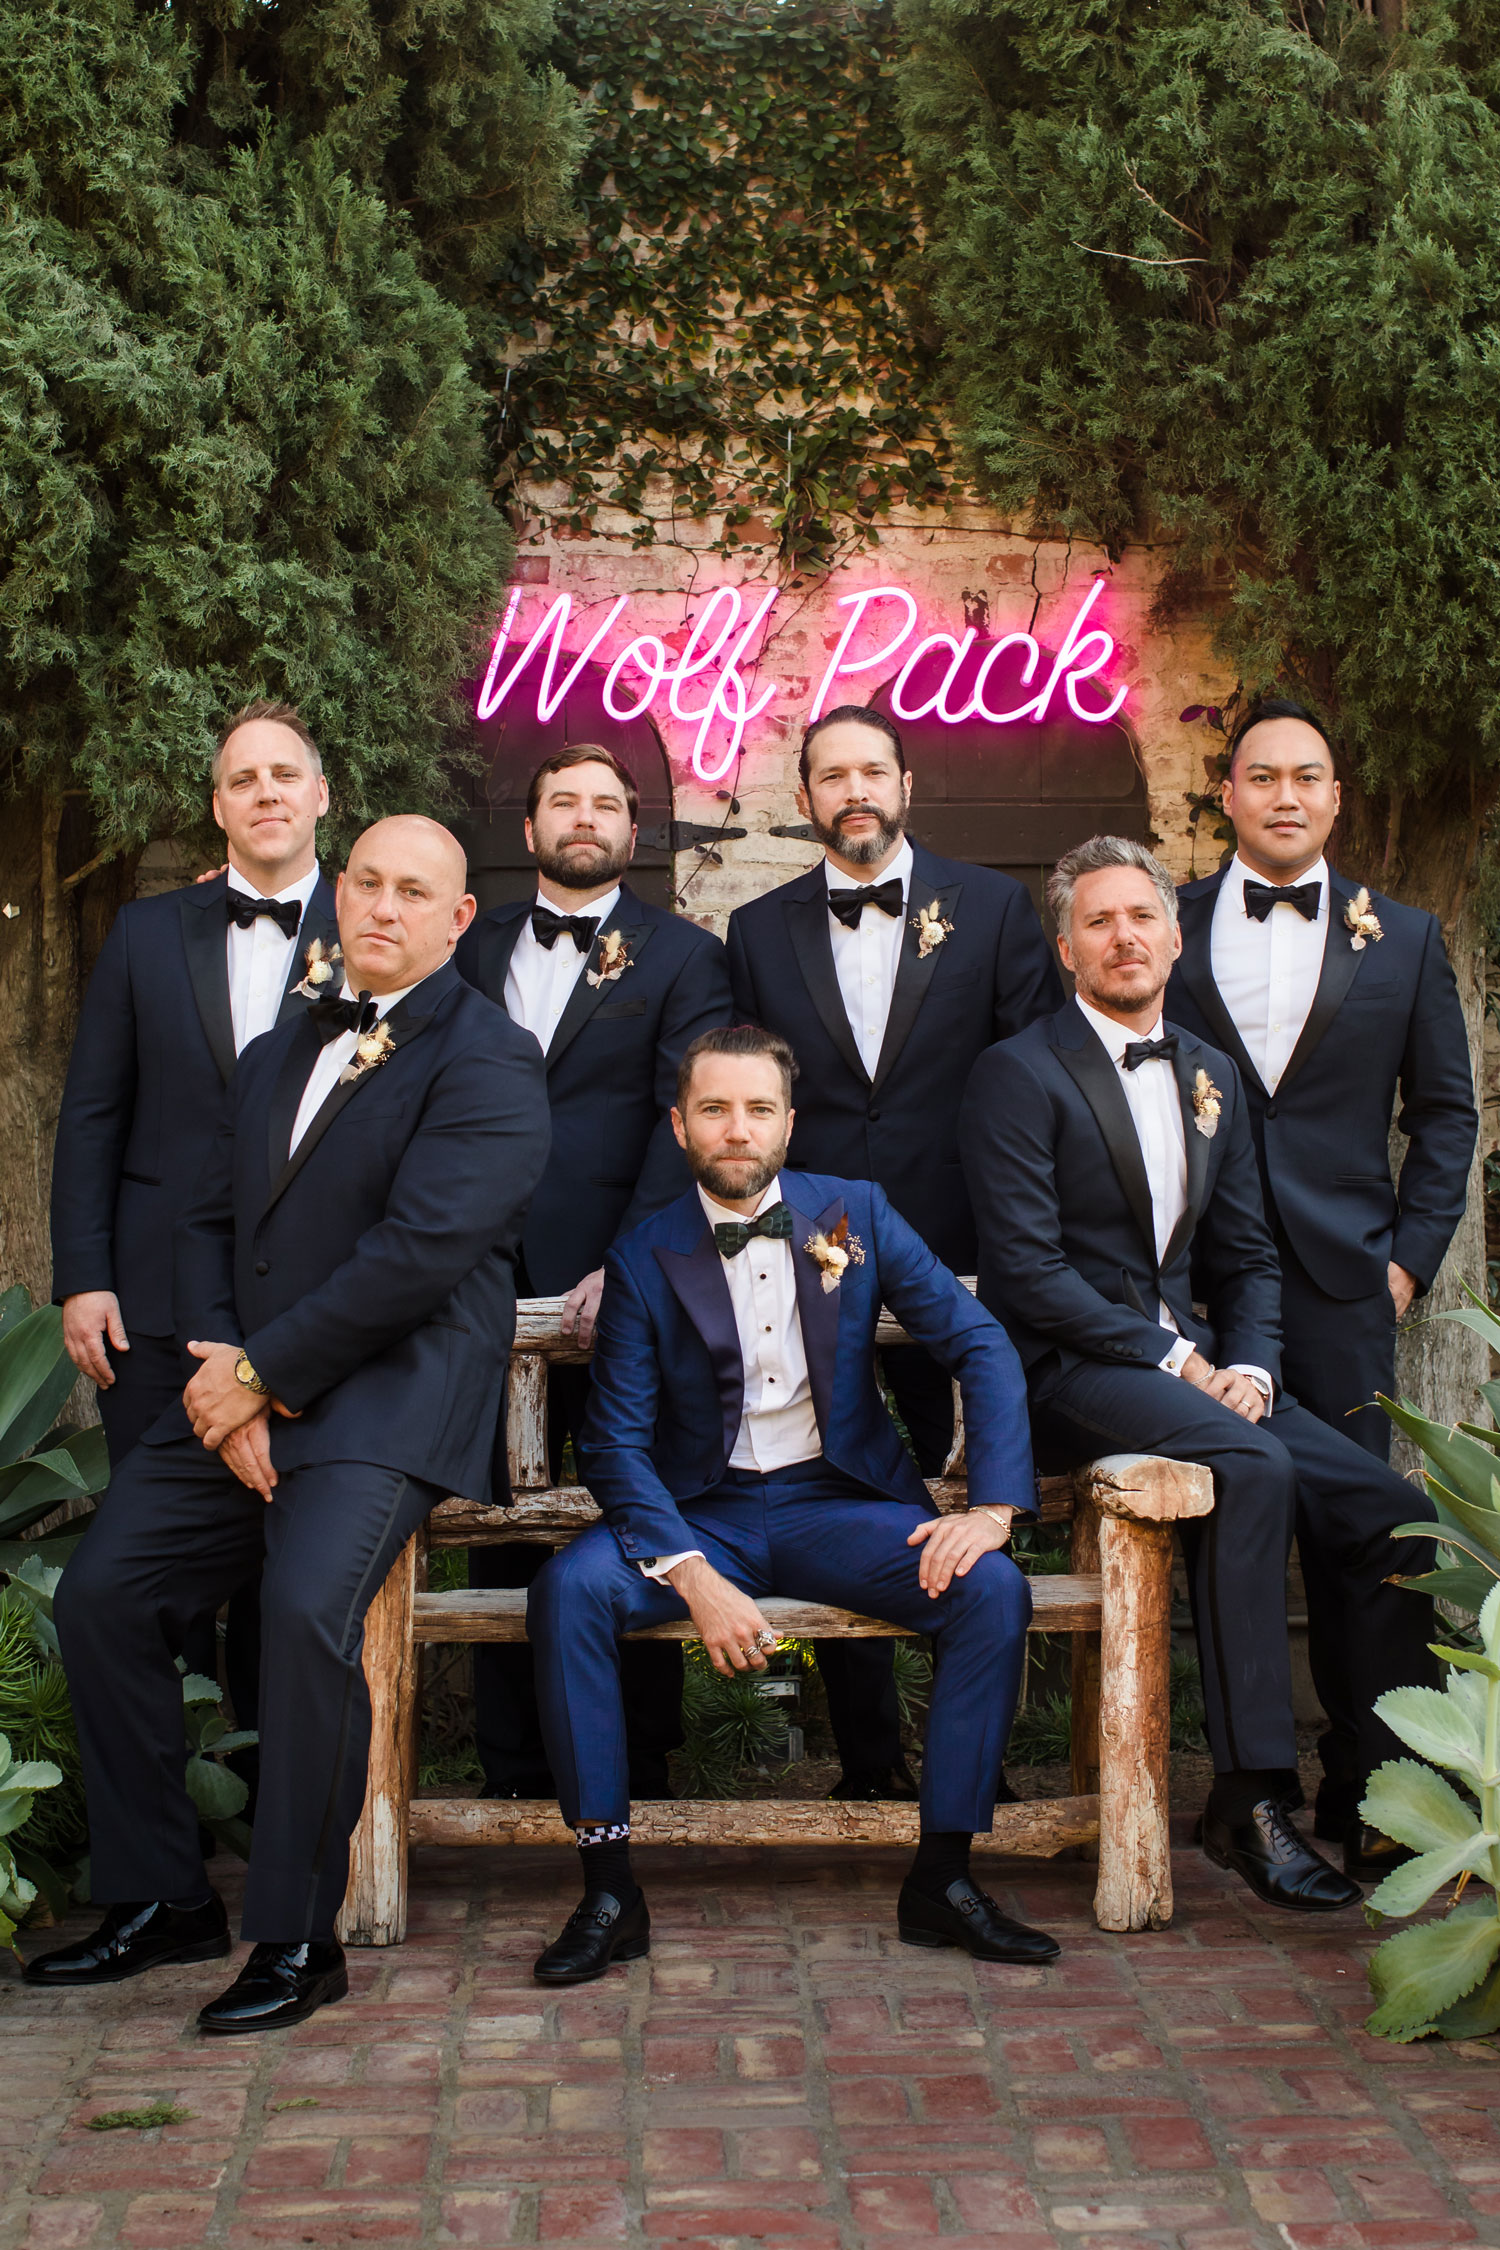 Top Chef Marcel Vigneron and Lauren Rae Levy real wedding planned by Tessa Lyn Events groom and groomsmen neon sign wolf pack